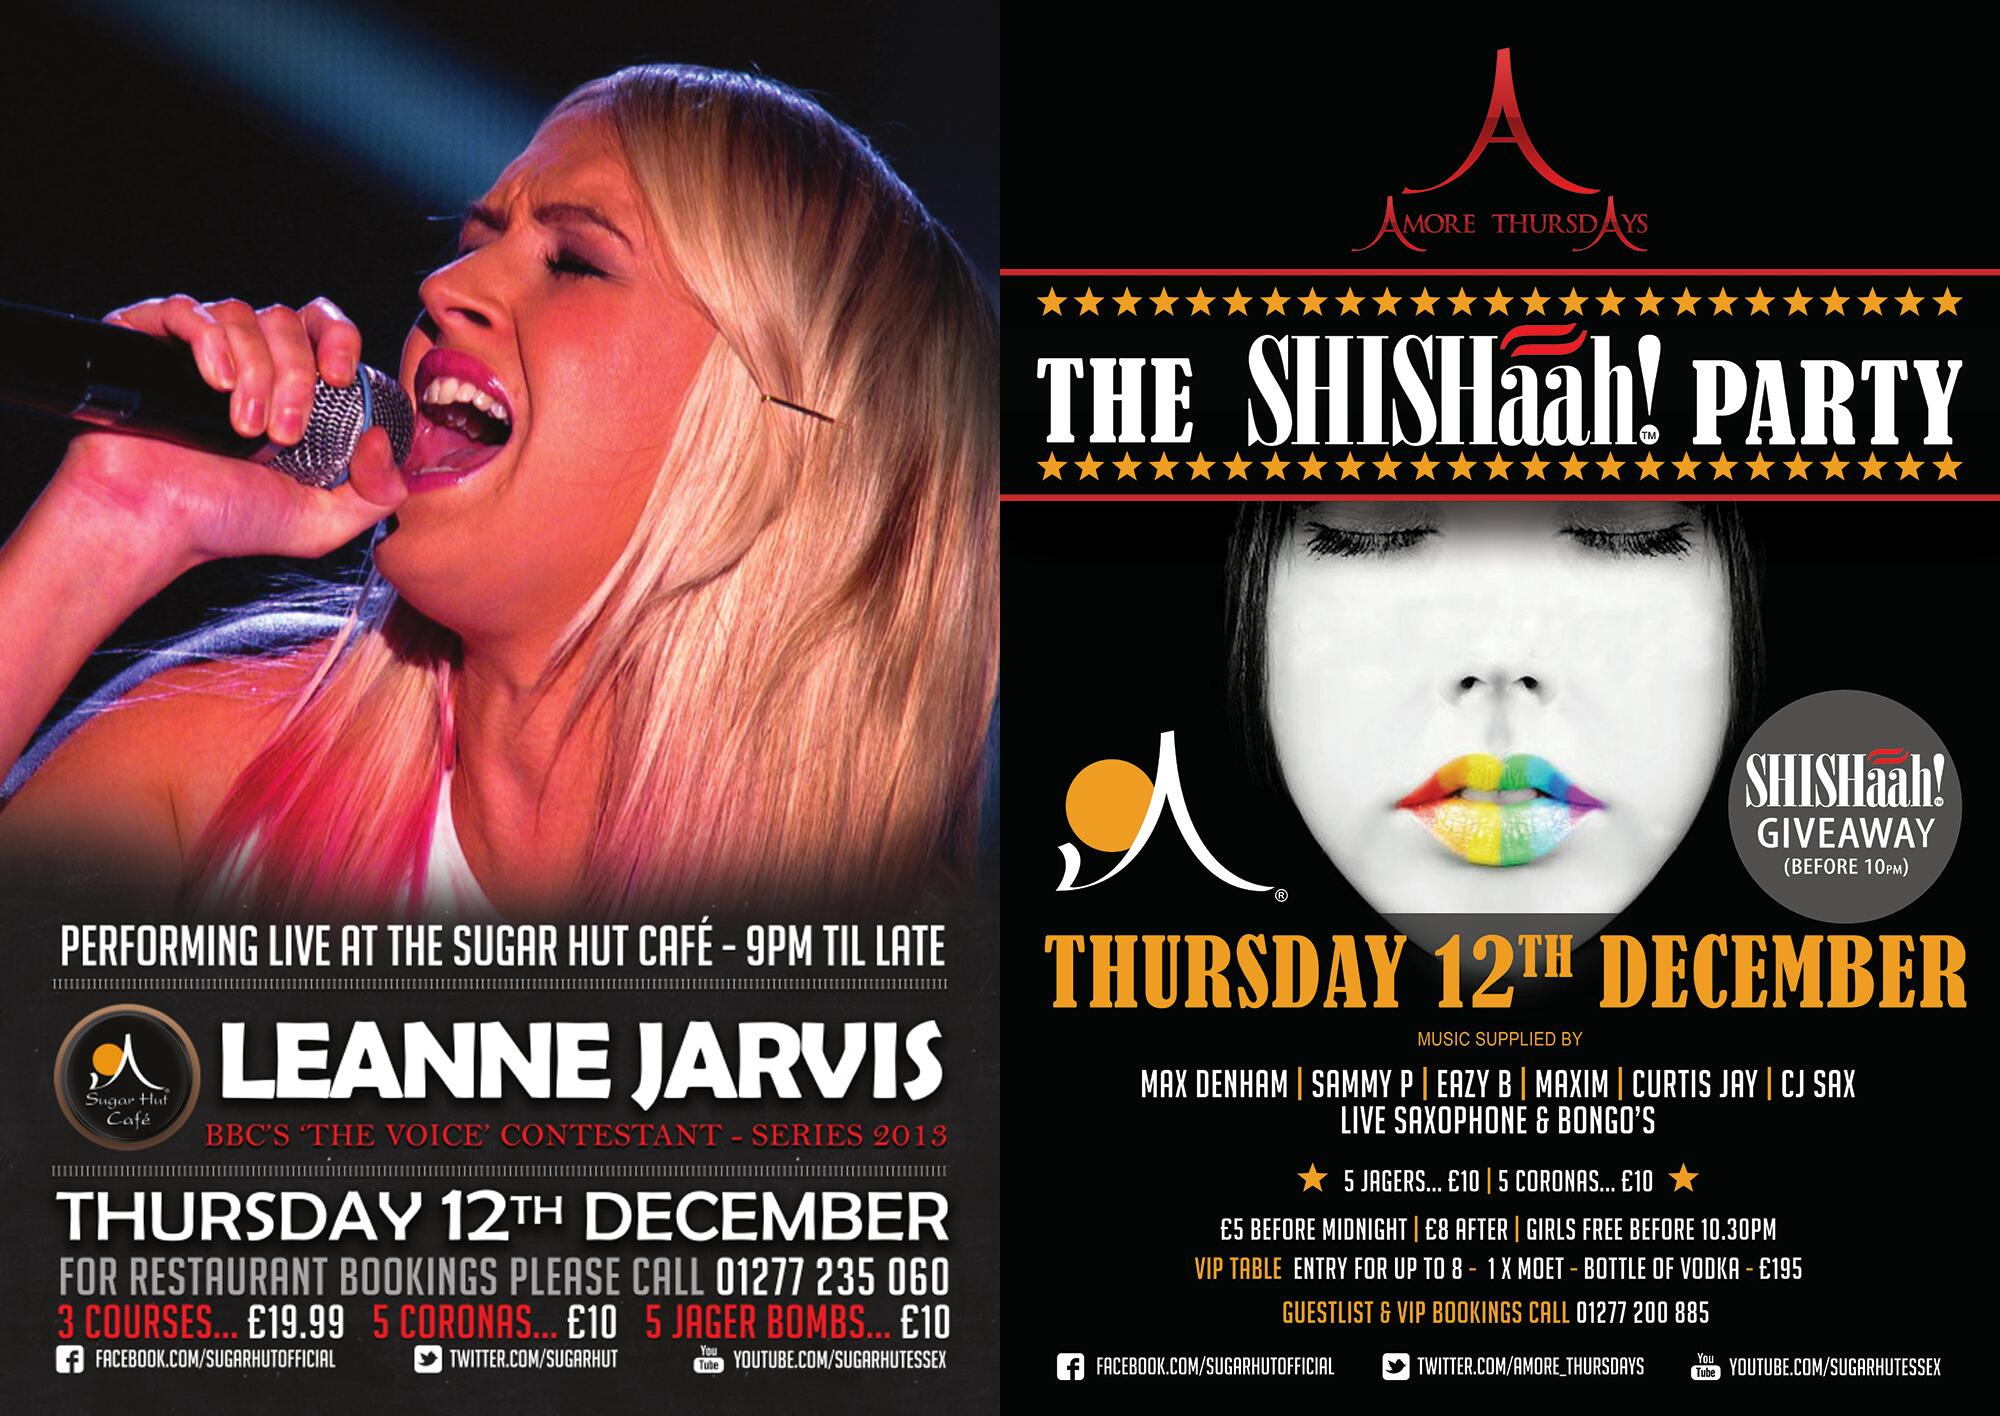 If you fancy listening to a bit of live music this Thursday join @LEANNEJARV & @willschilds In the @SugarHutCafe http://t.co/VR8CWcuwww